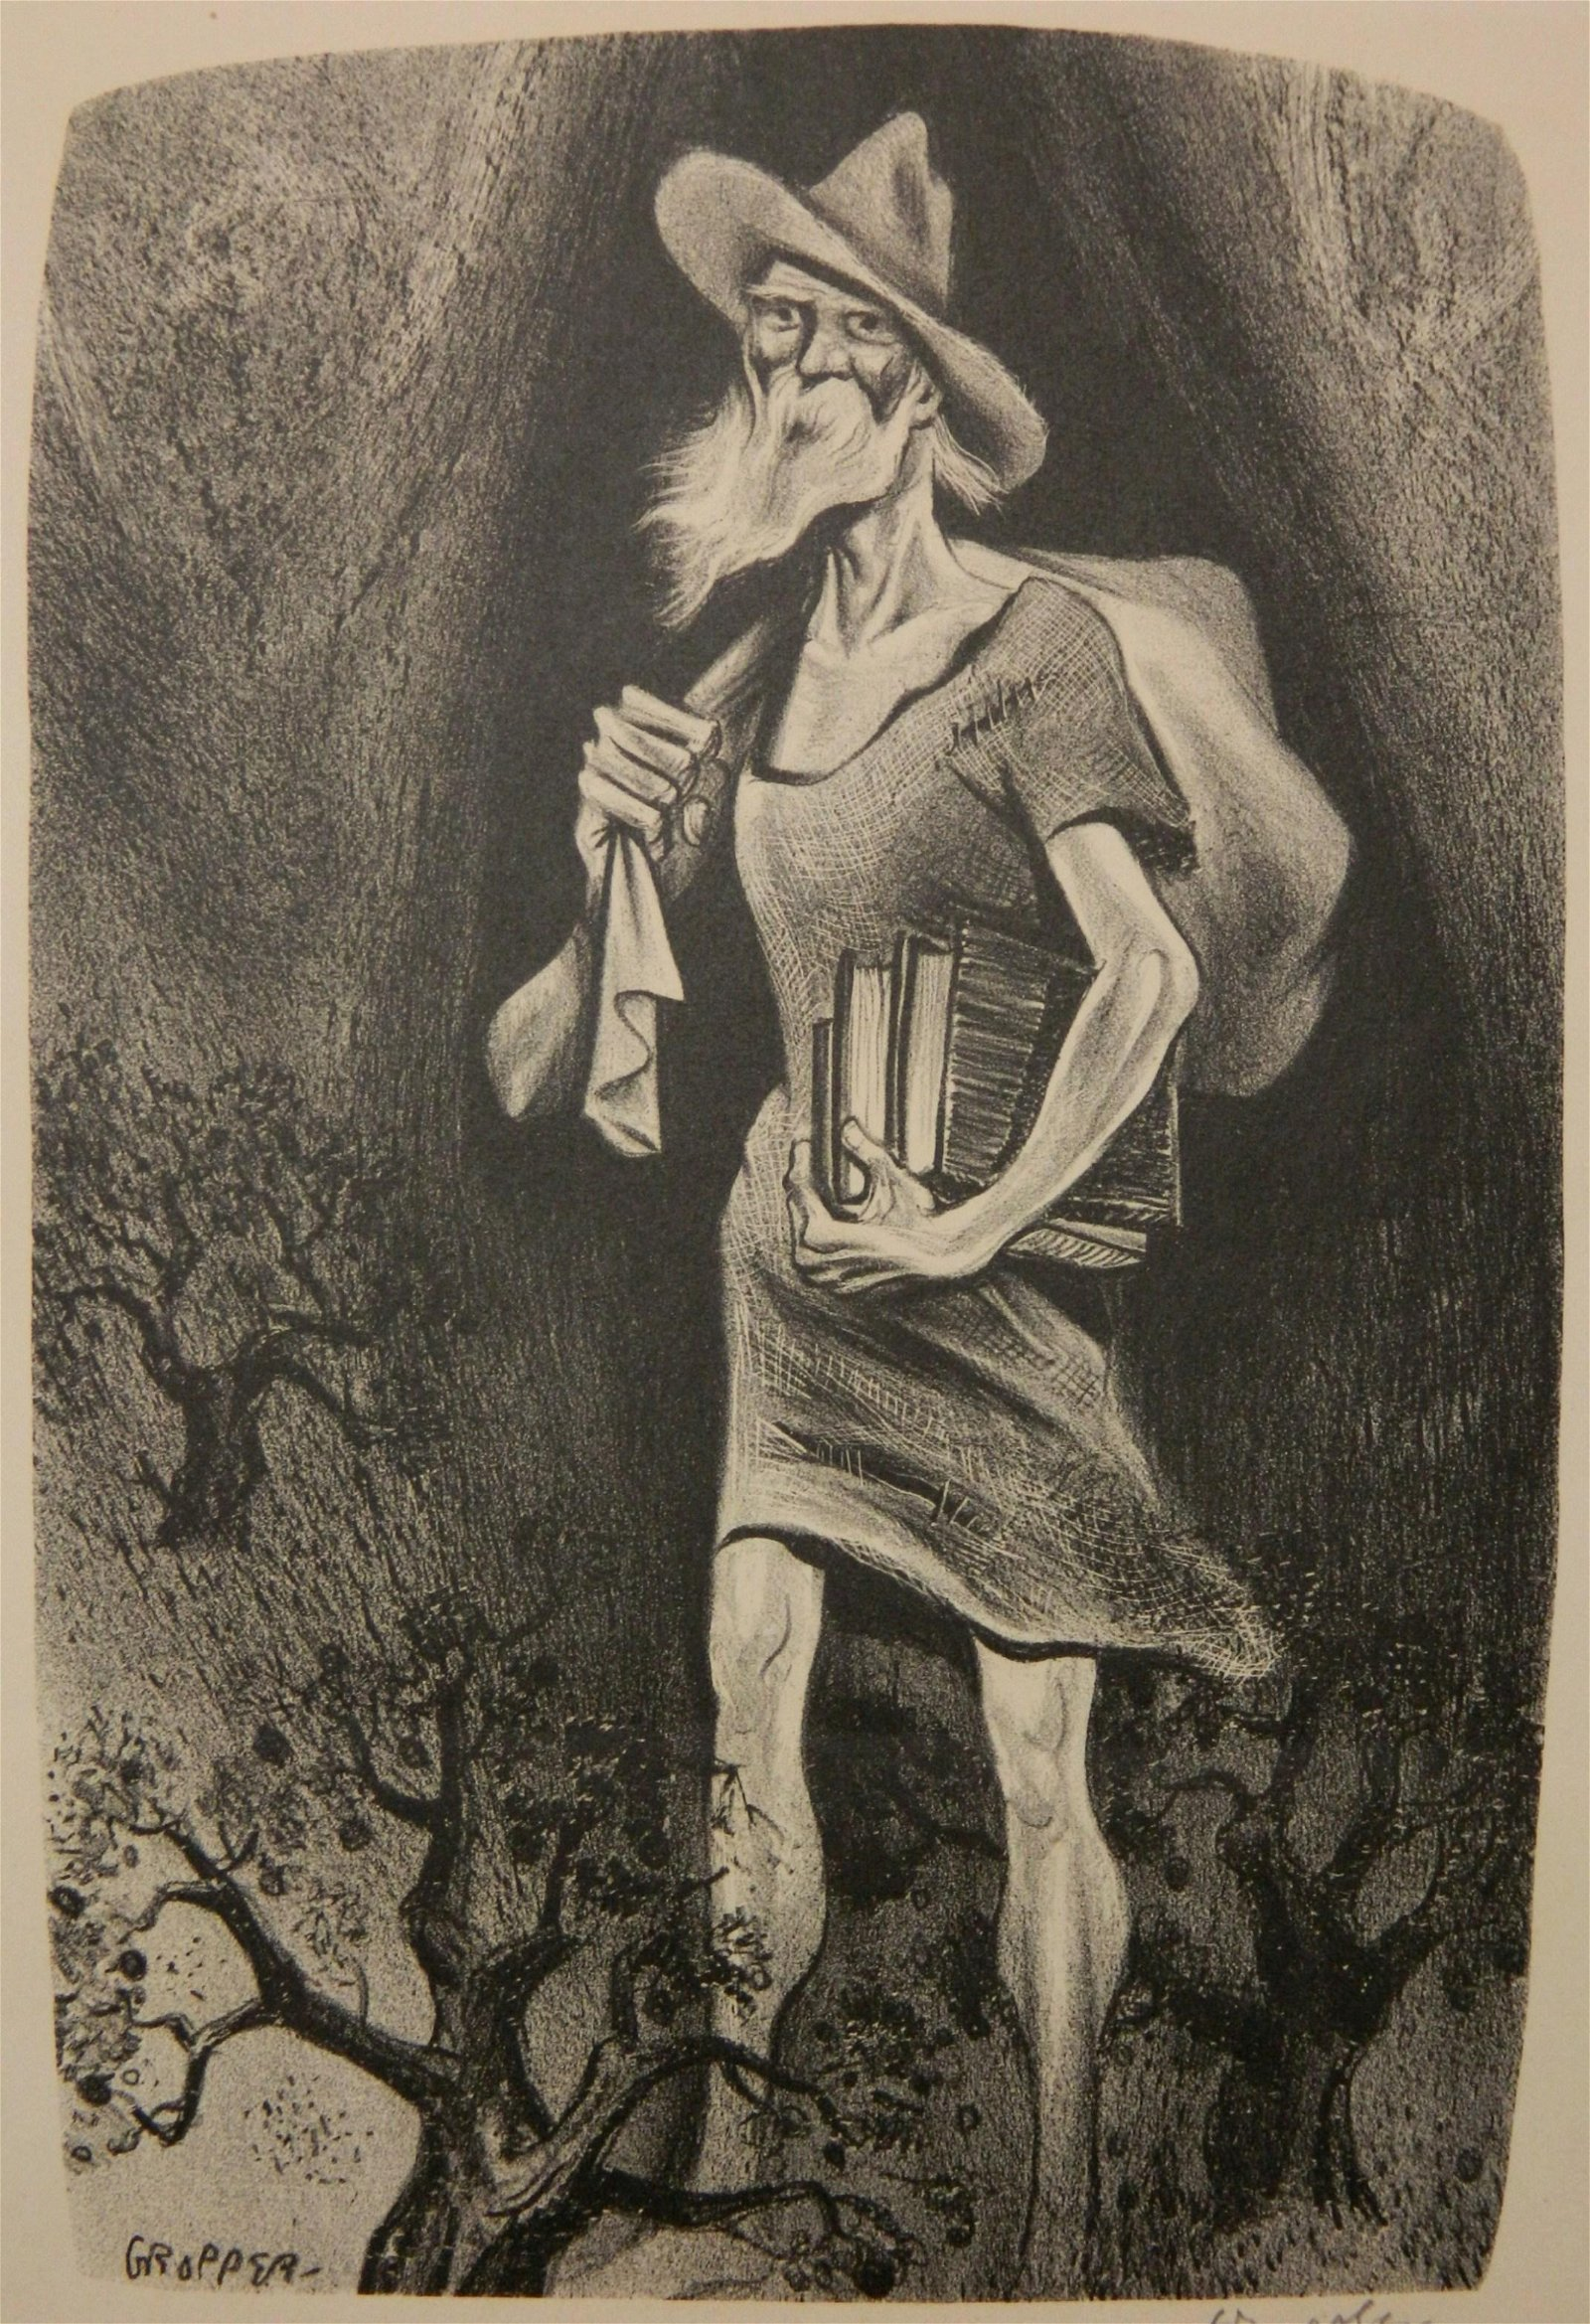 William Gropper lithograph